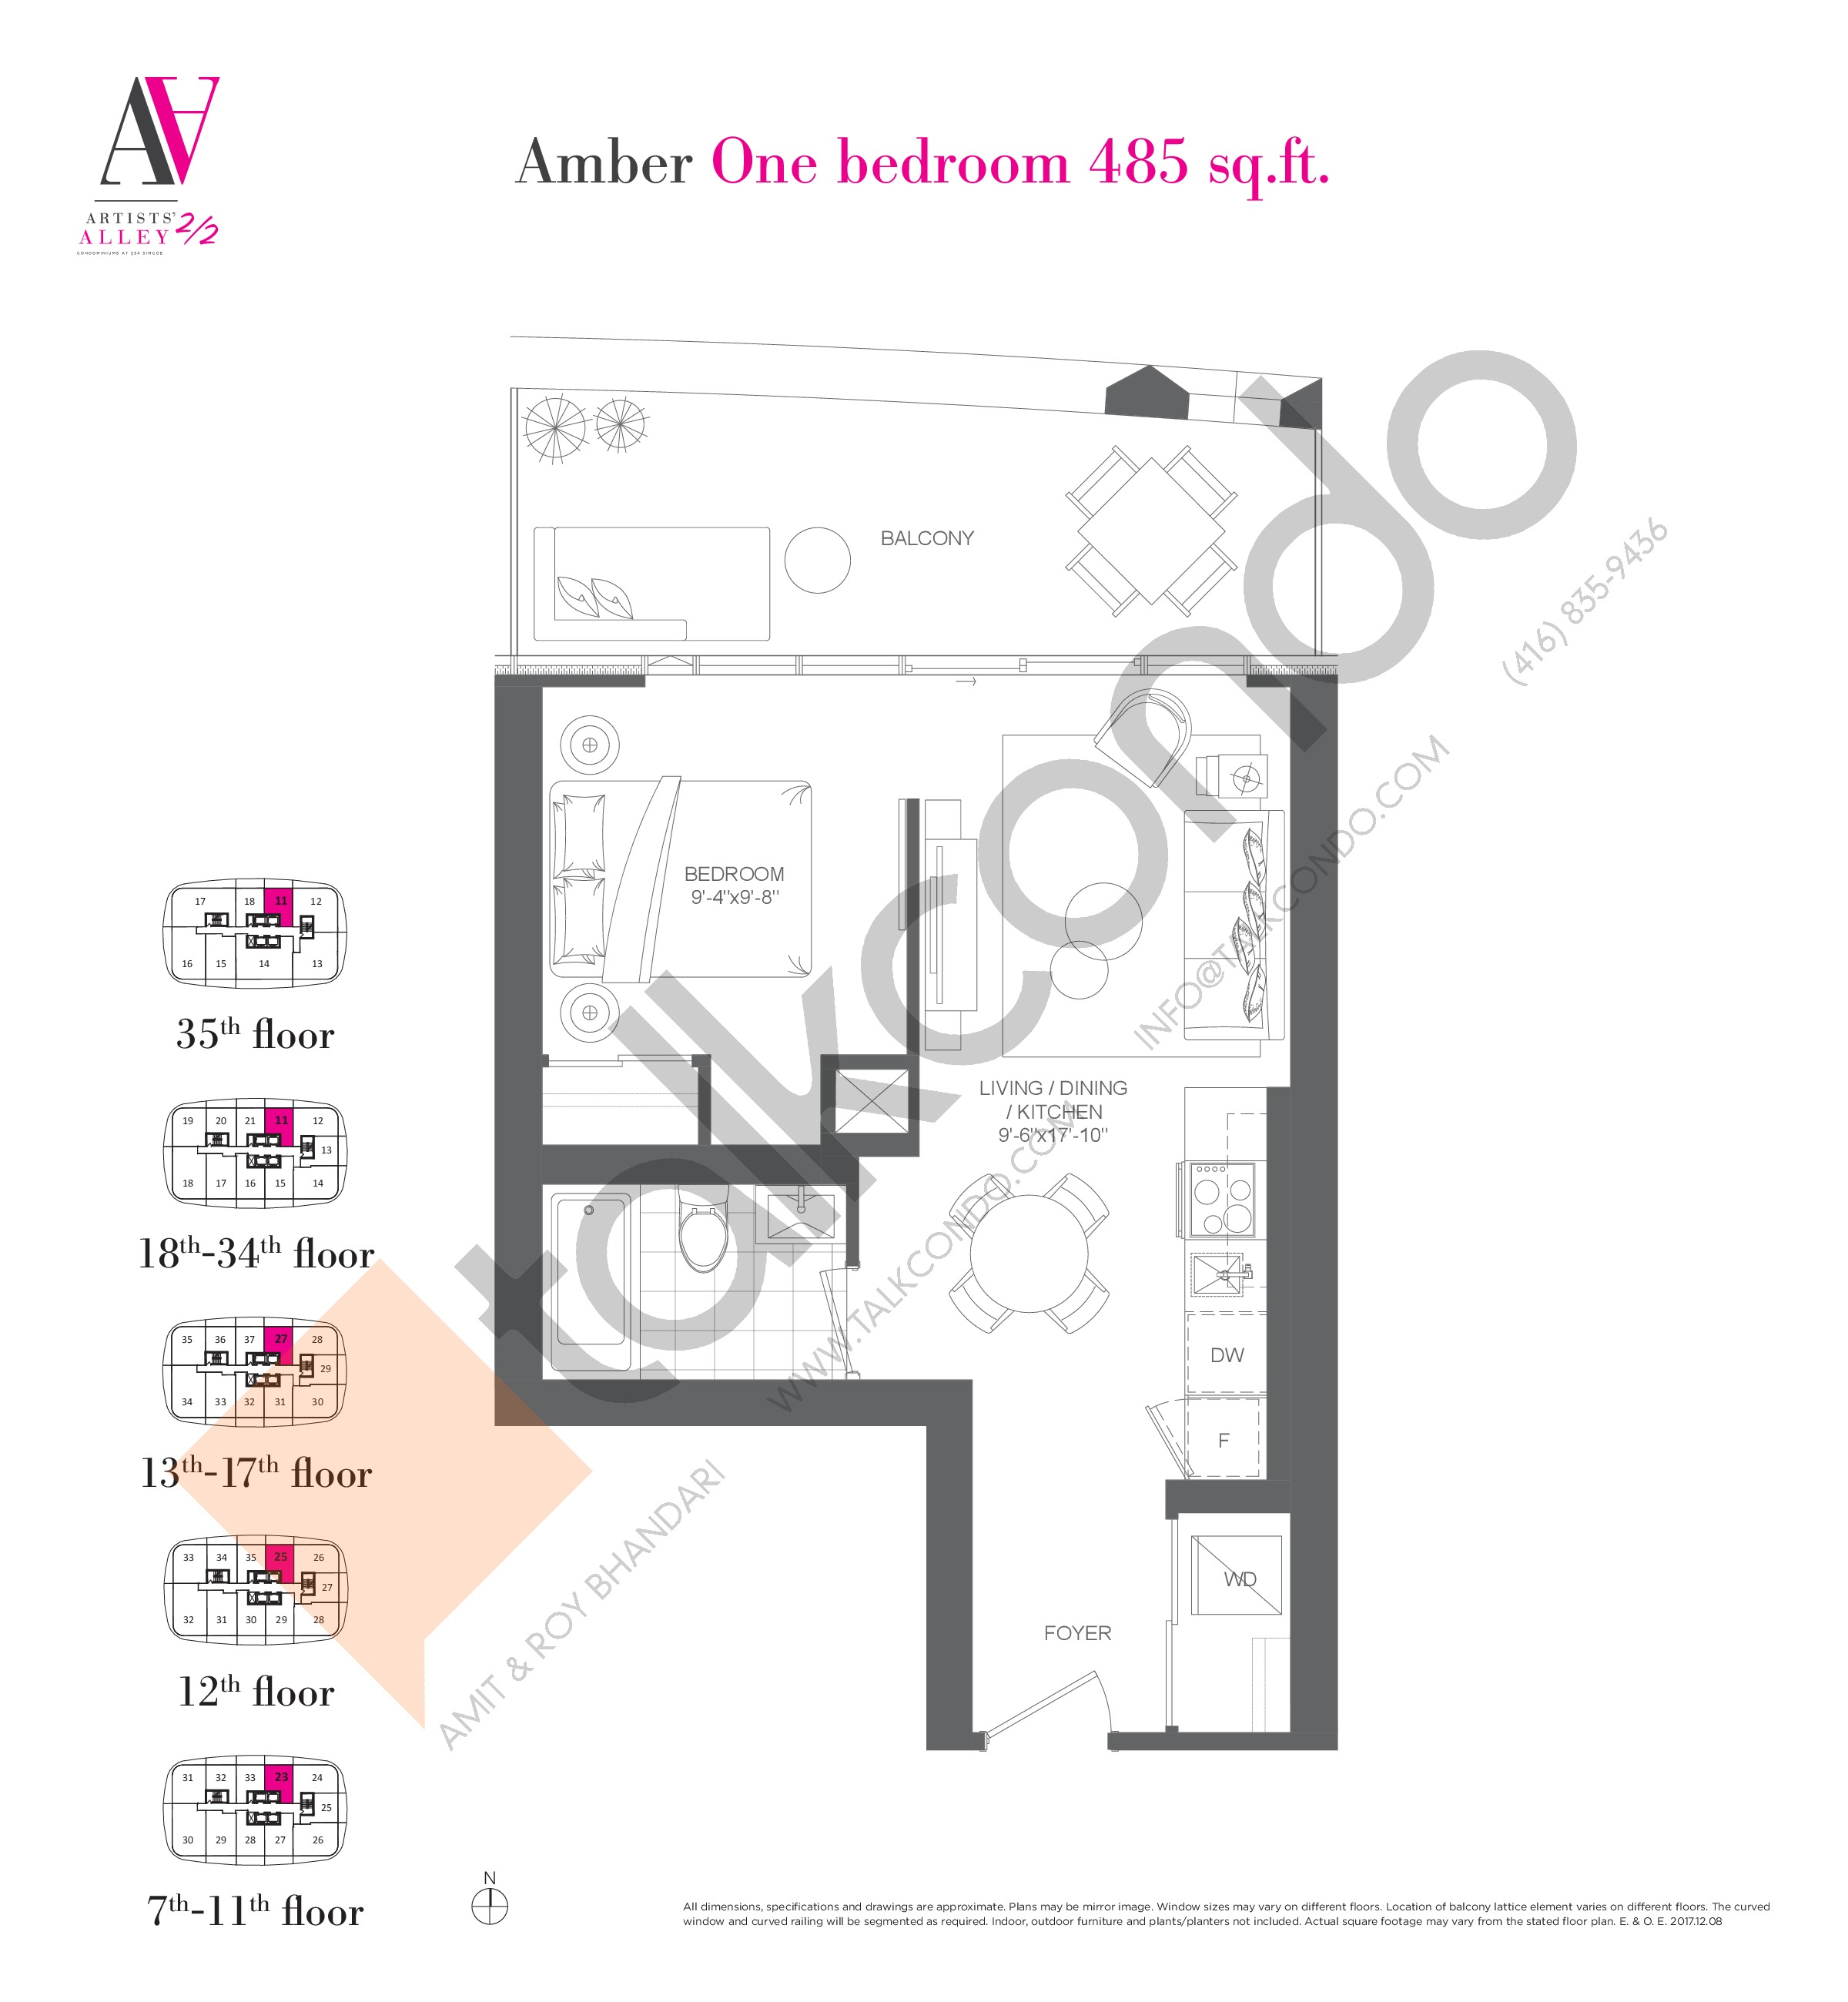 Amber Floor Plan at Artists' Alley 2 Condos - 485 sq.ft